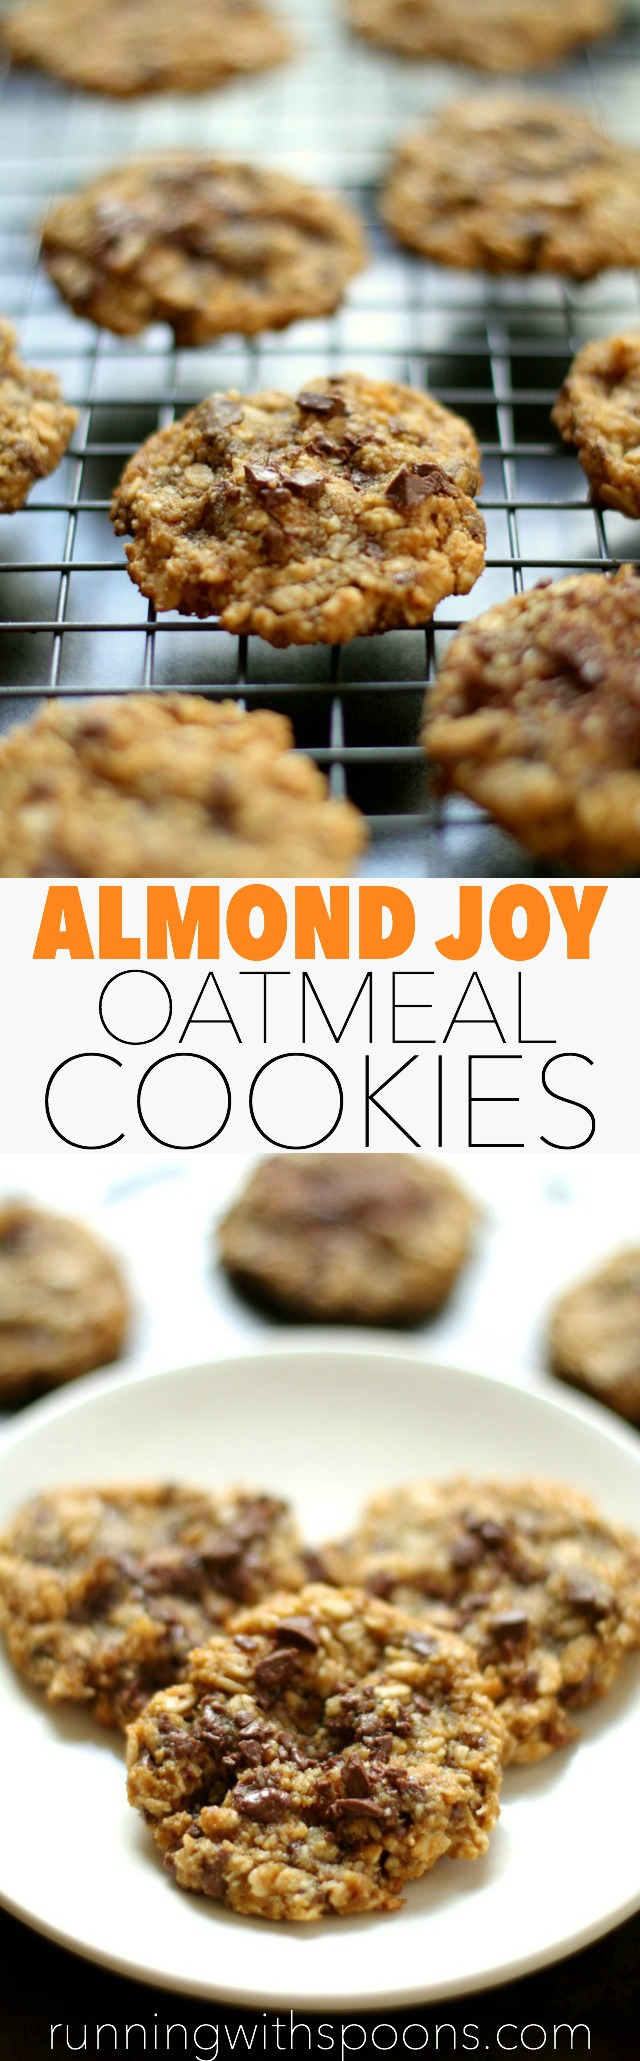 Almond Joy Oatmeal Cookies -- almond flour, coconut, and chocolate in a soft and chewy gluten-free oatmeal cookie || runningwithspoons.com #glutenfree #healthy #cookies